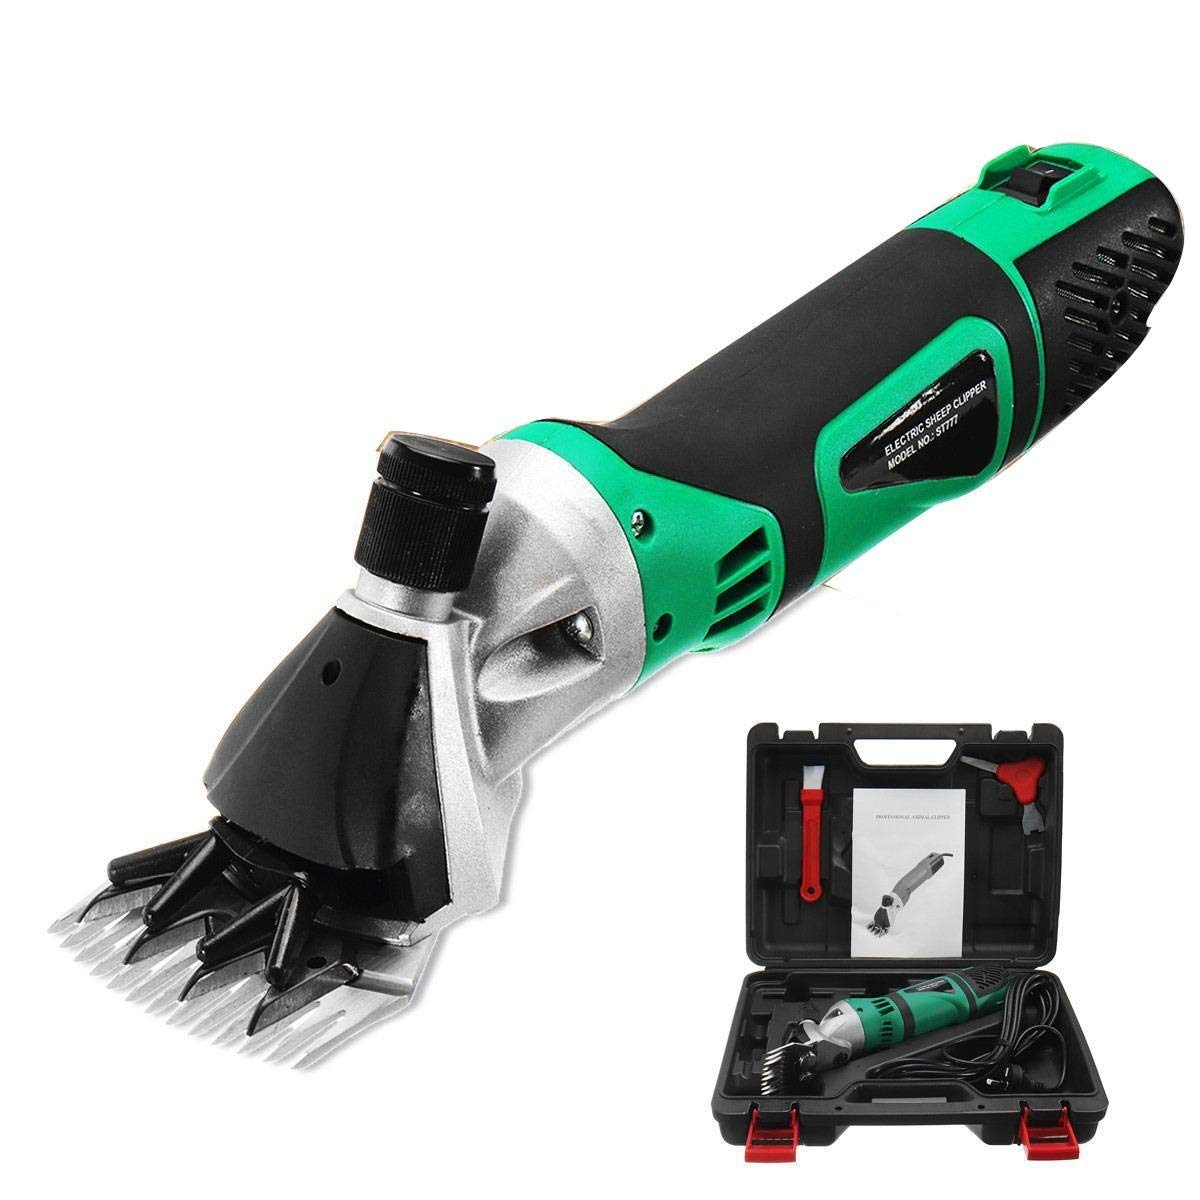 Electric Sheep Shearing Clipper 500W Electric Animal Grooming Clippers - Sheep Cutter Goat Clipper Ideal for Sheep Goat Dog Pet - Alpaca Hair Cut Farm Machine Tool 220V(13 Straight Teeth) by XGG-tool